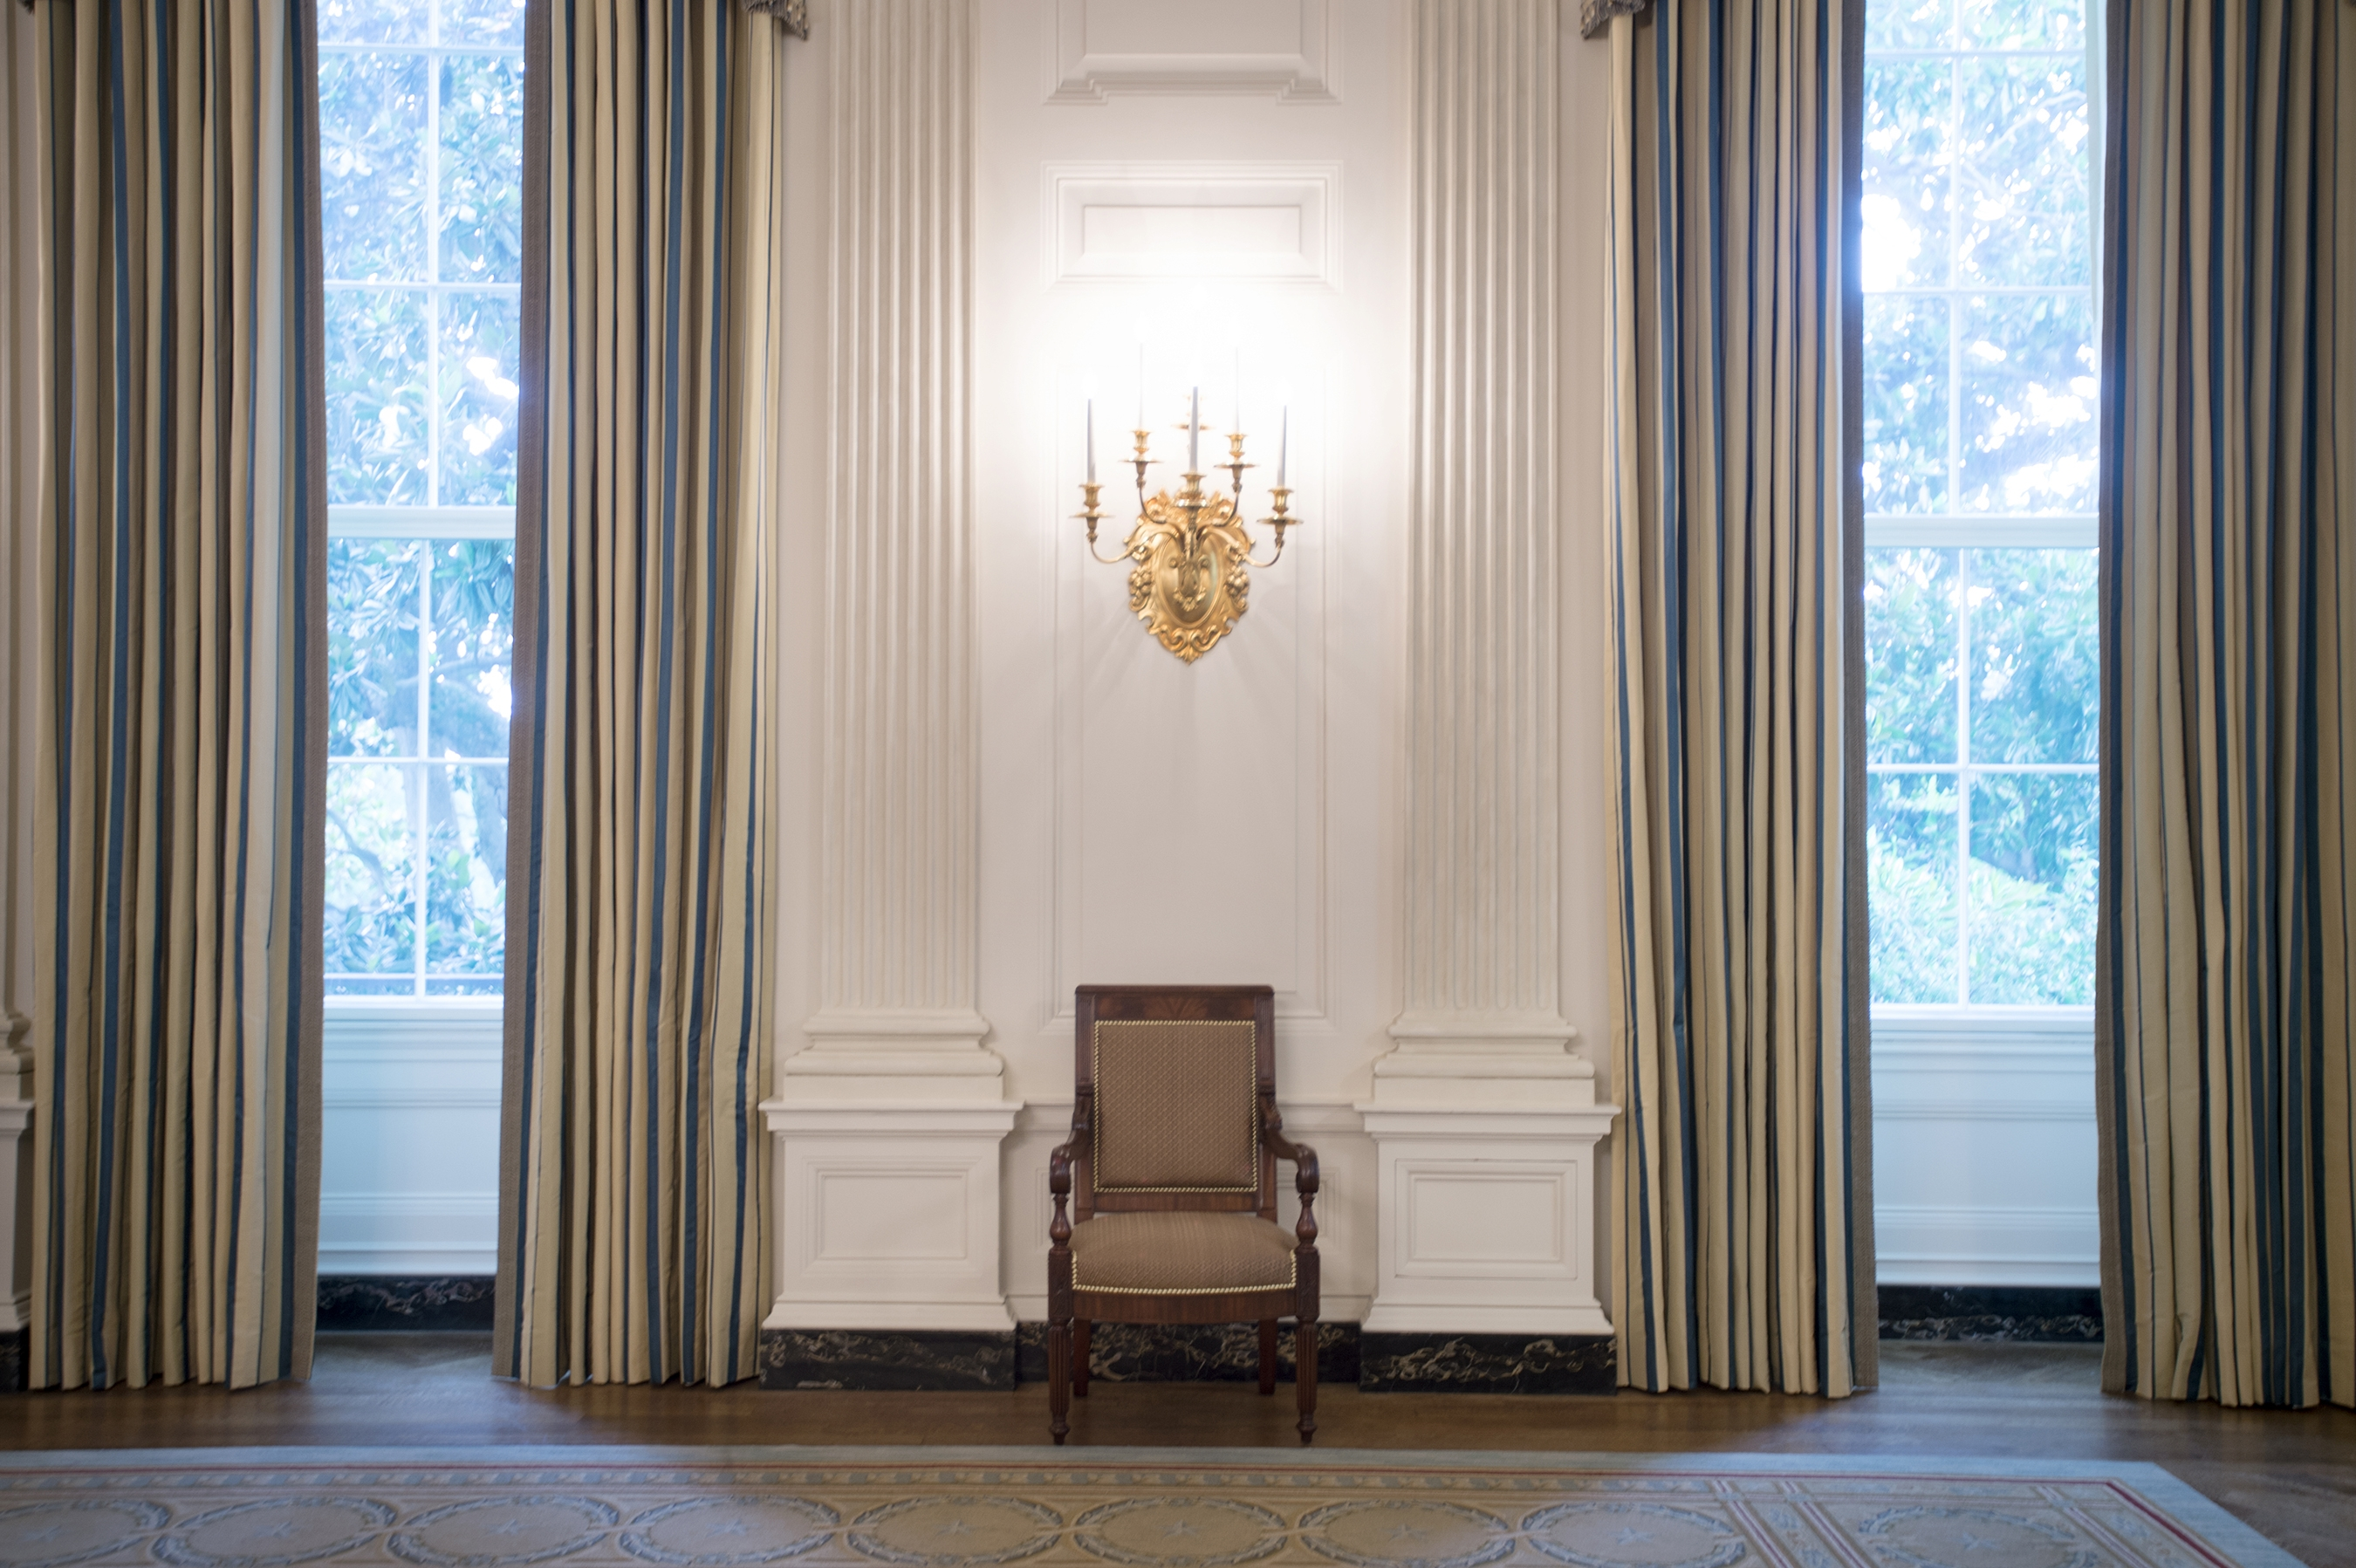 The makeover of the White House State Dining Room dressed up the space with sumptuous new silk curtains, a set of 34 new mahogany chairs inspired by ones from the Monroe era and a new paint job that highlights the architecture in the room.MUST CREDIT:  Washington Post photo by John McDonnell)